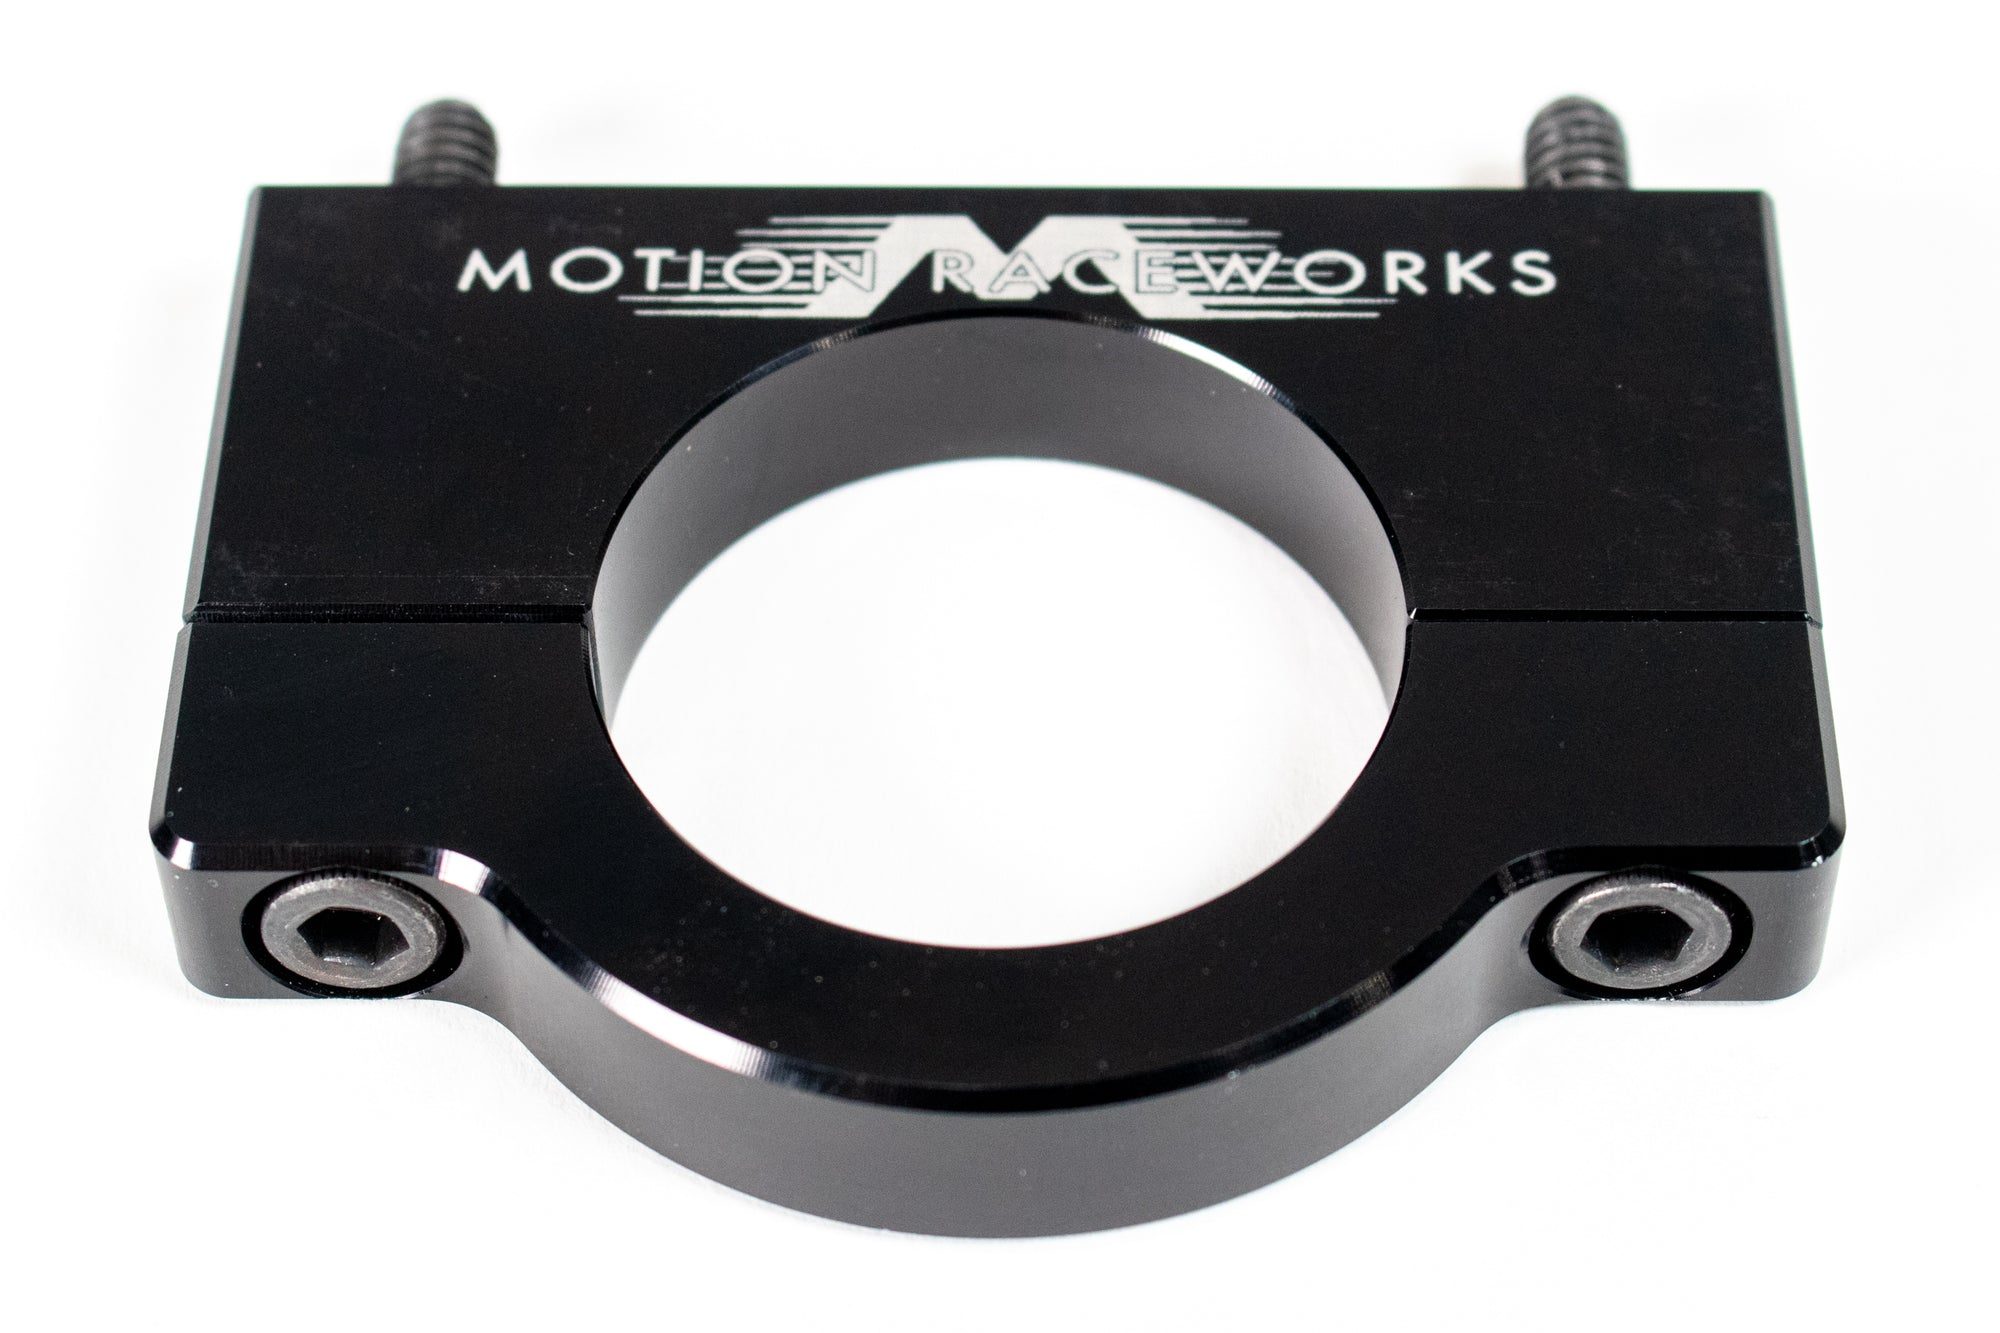 Motion Raceworks 1 1/2 Roll bar mount 1812002 - Motion Raceworks